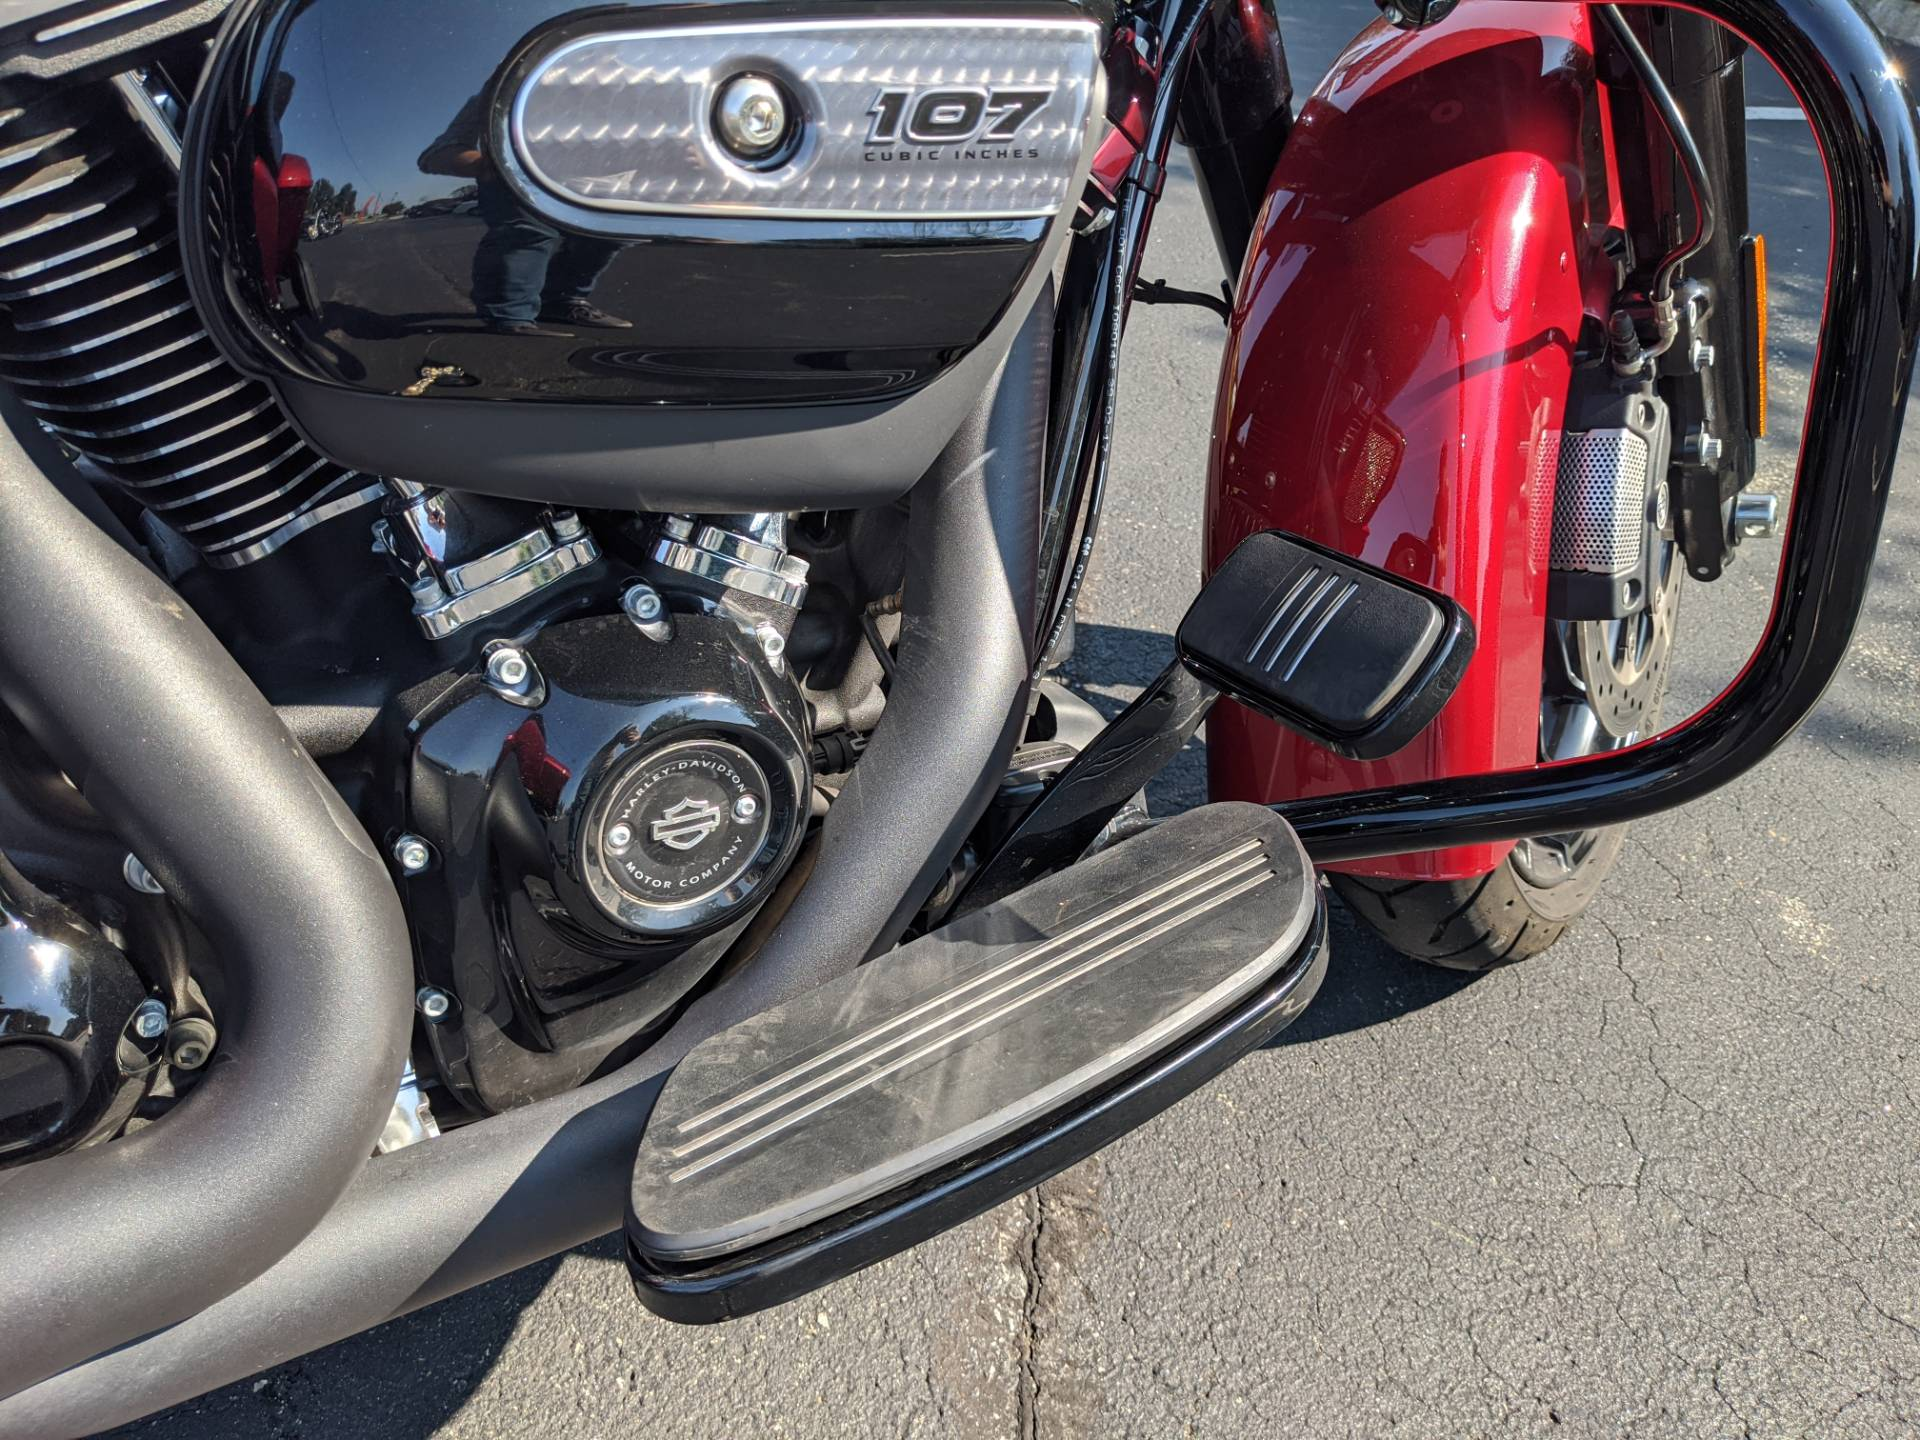 2018 Harley-Davidson Road Glide® Special in Lynchburg, Virginia - Photo 21